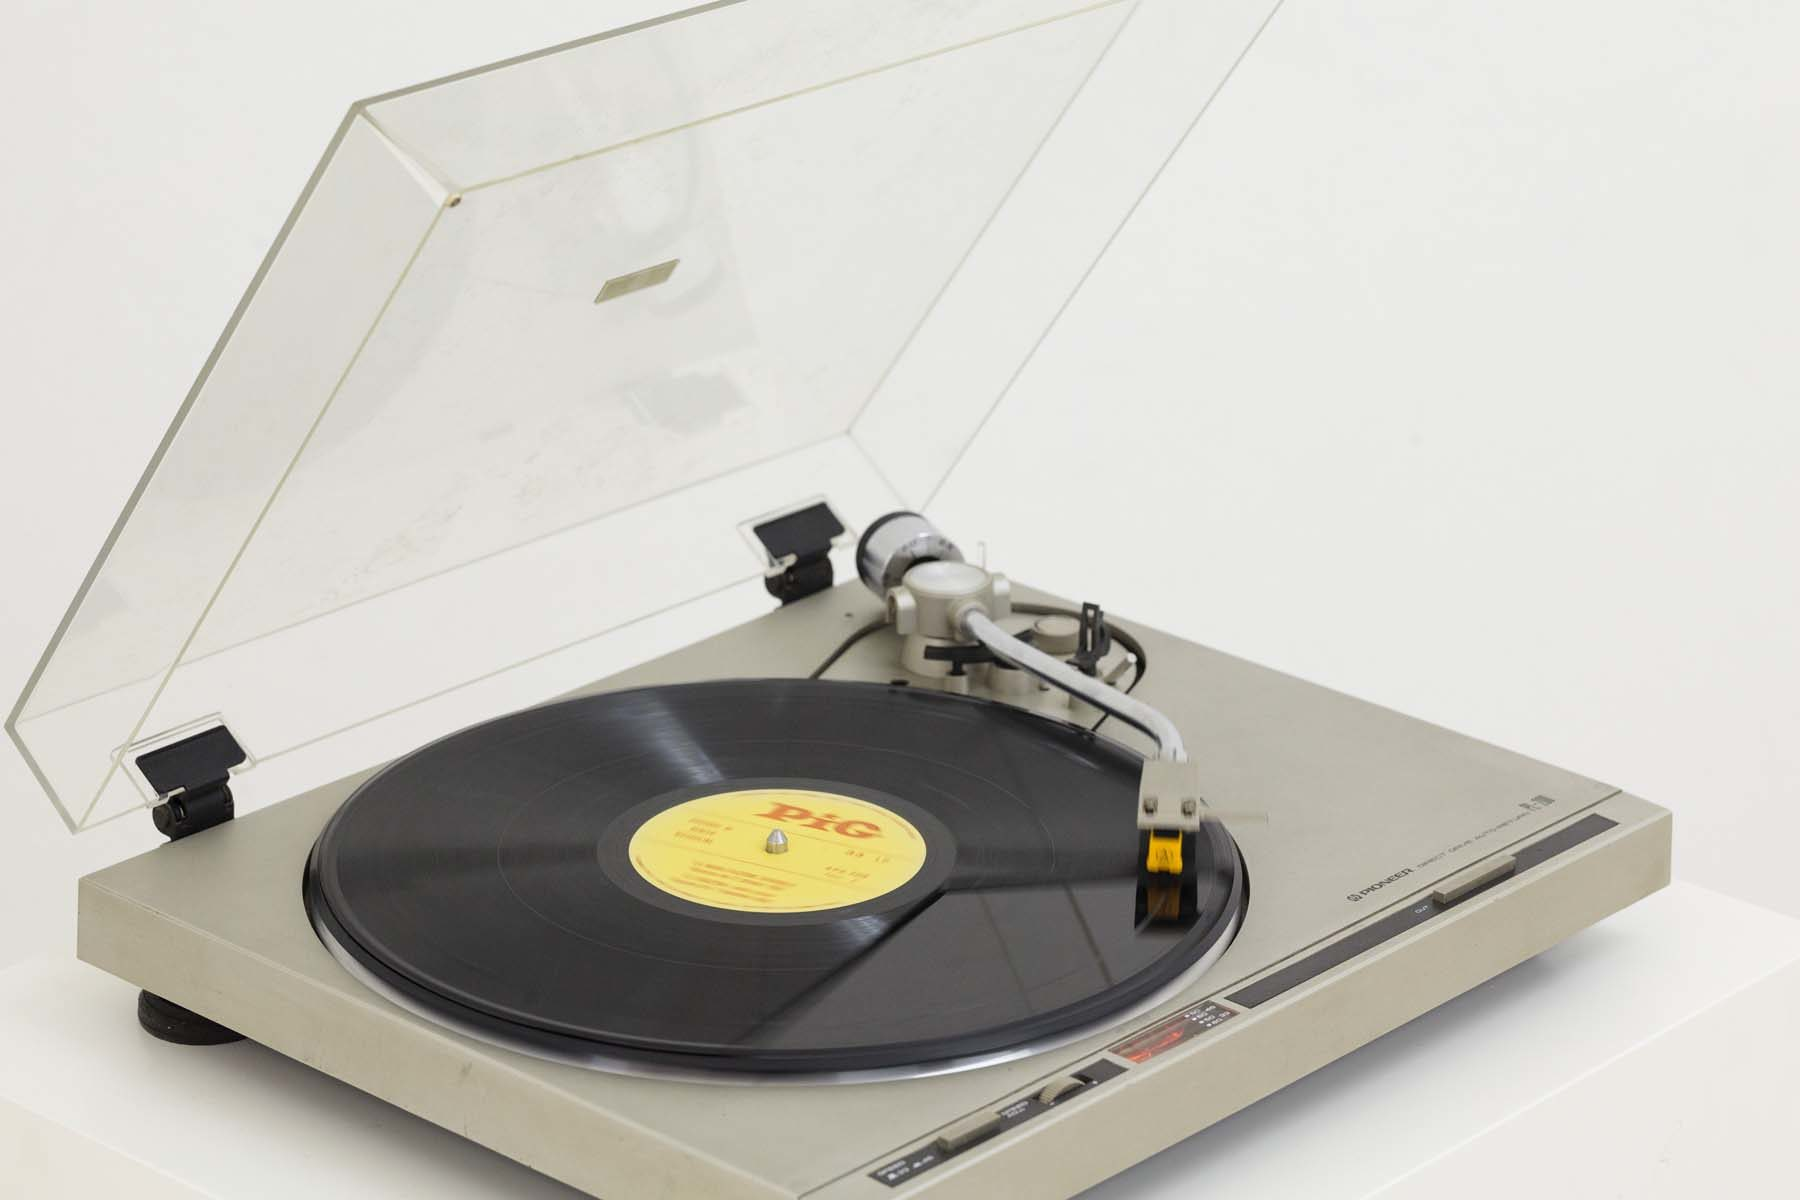 G. Morbin, Hiccup, 2007, record player, loudspeaker, cutted vinyl record, 52 x 44.3 x 110 cm